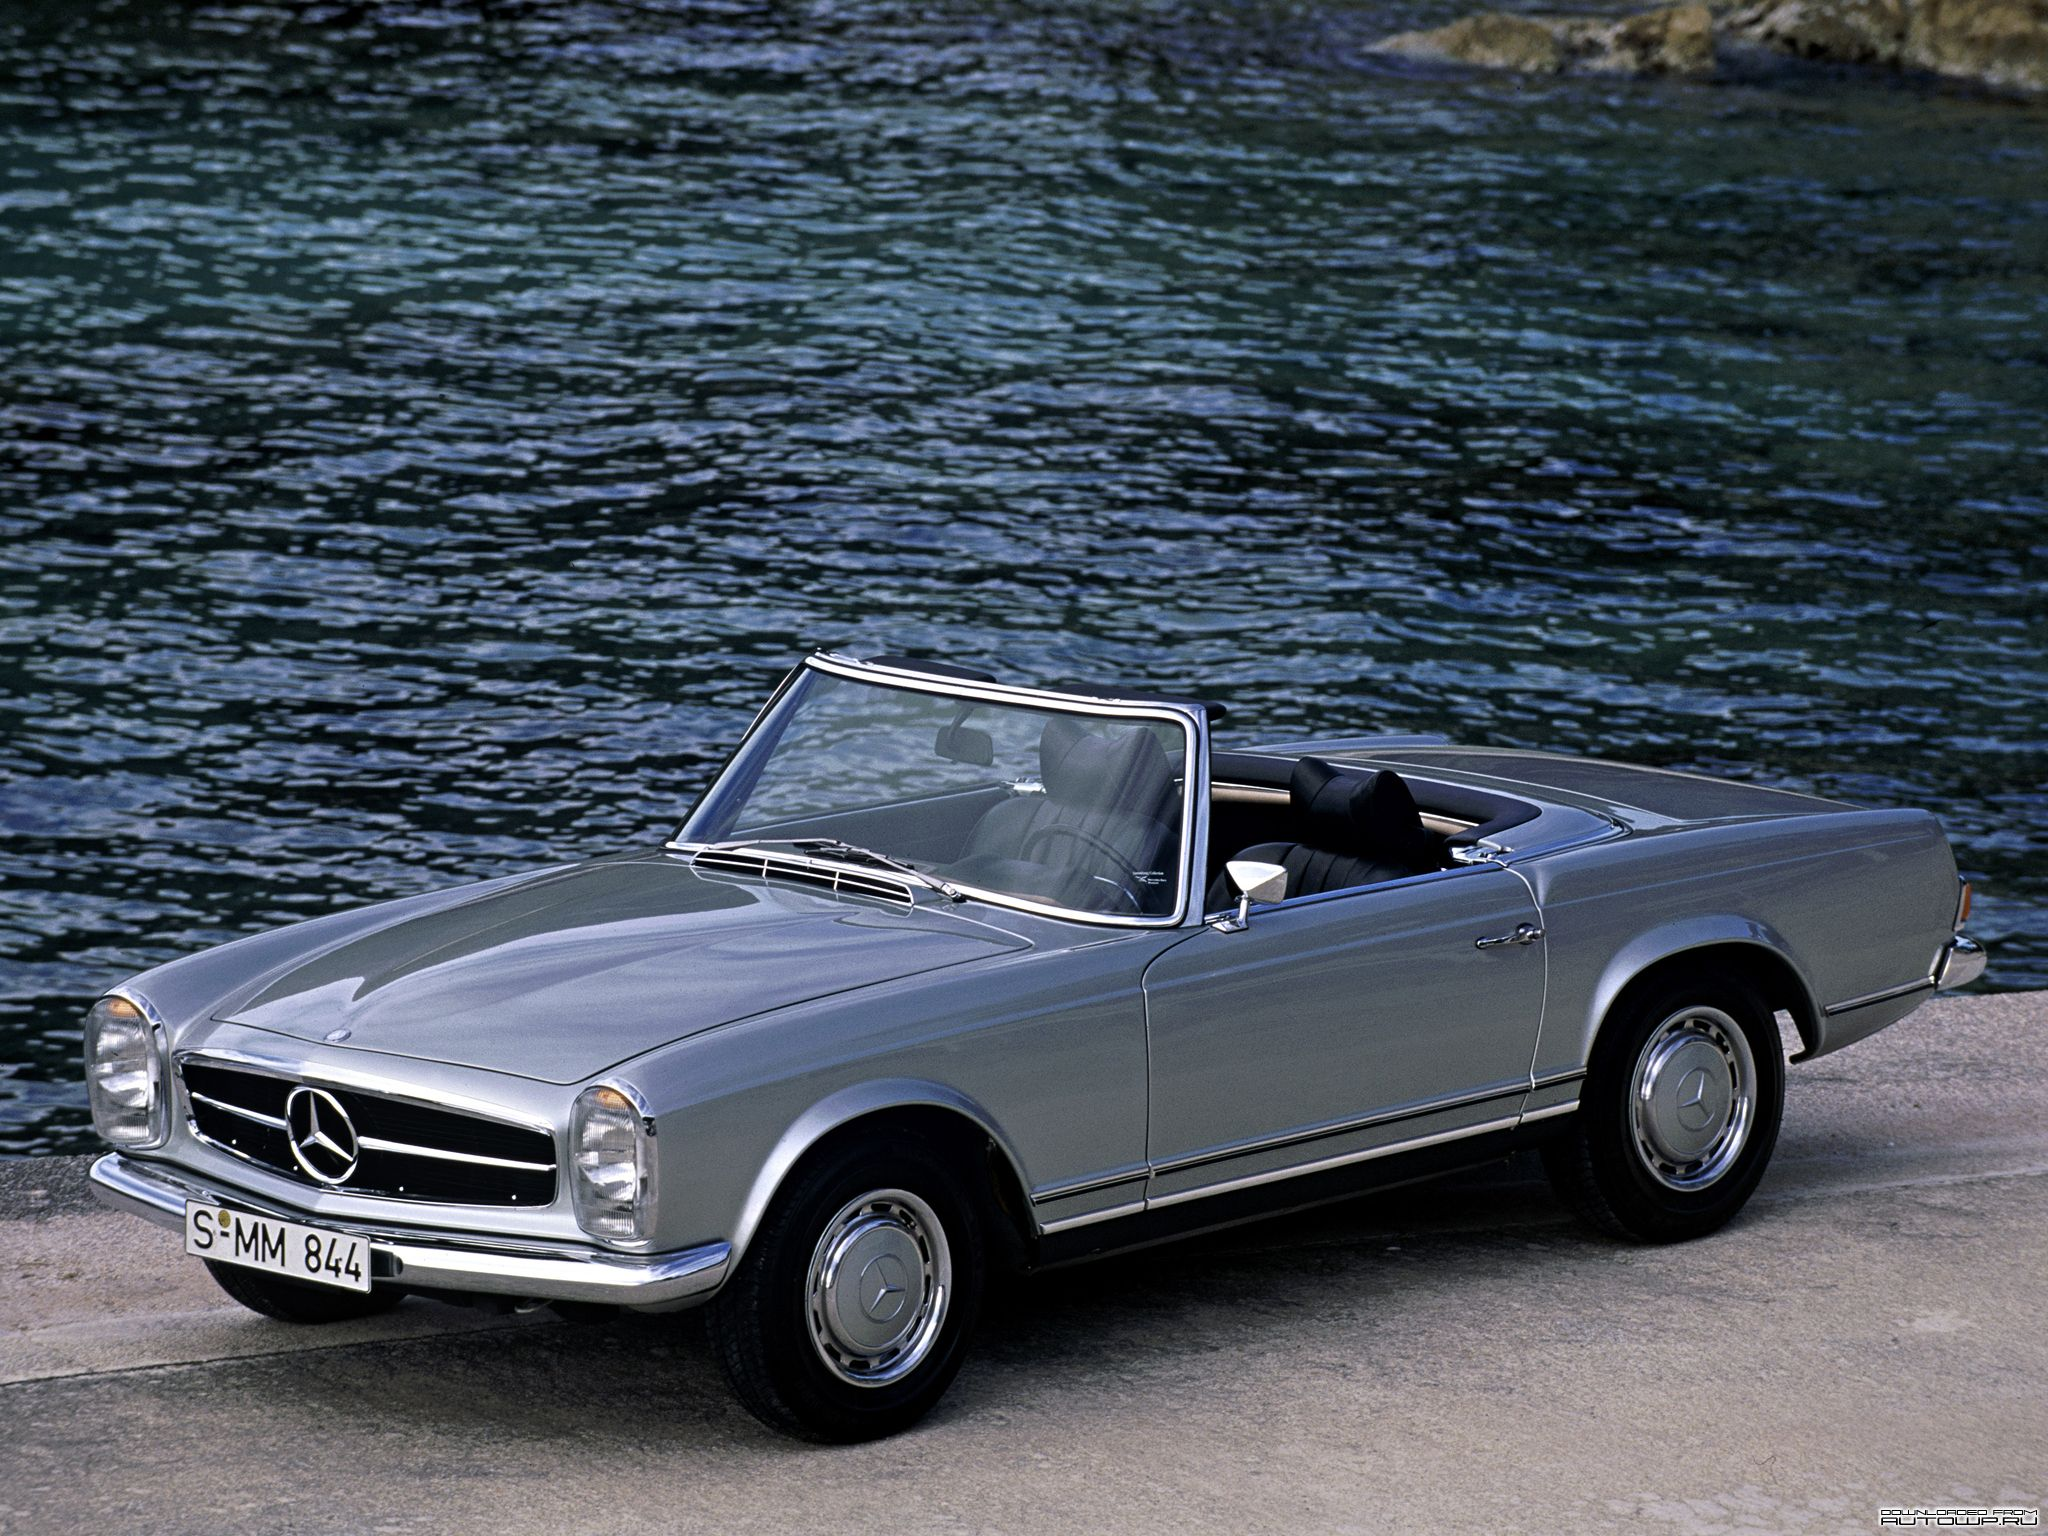 mercedes benz 280sl w113 1968 71 cars to buy pinterest mercedes benz cars and wheels. Black Bedroom Furniture Sets. Home Design Ideas